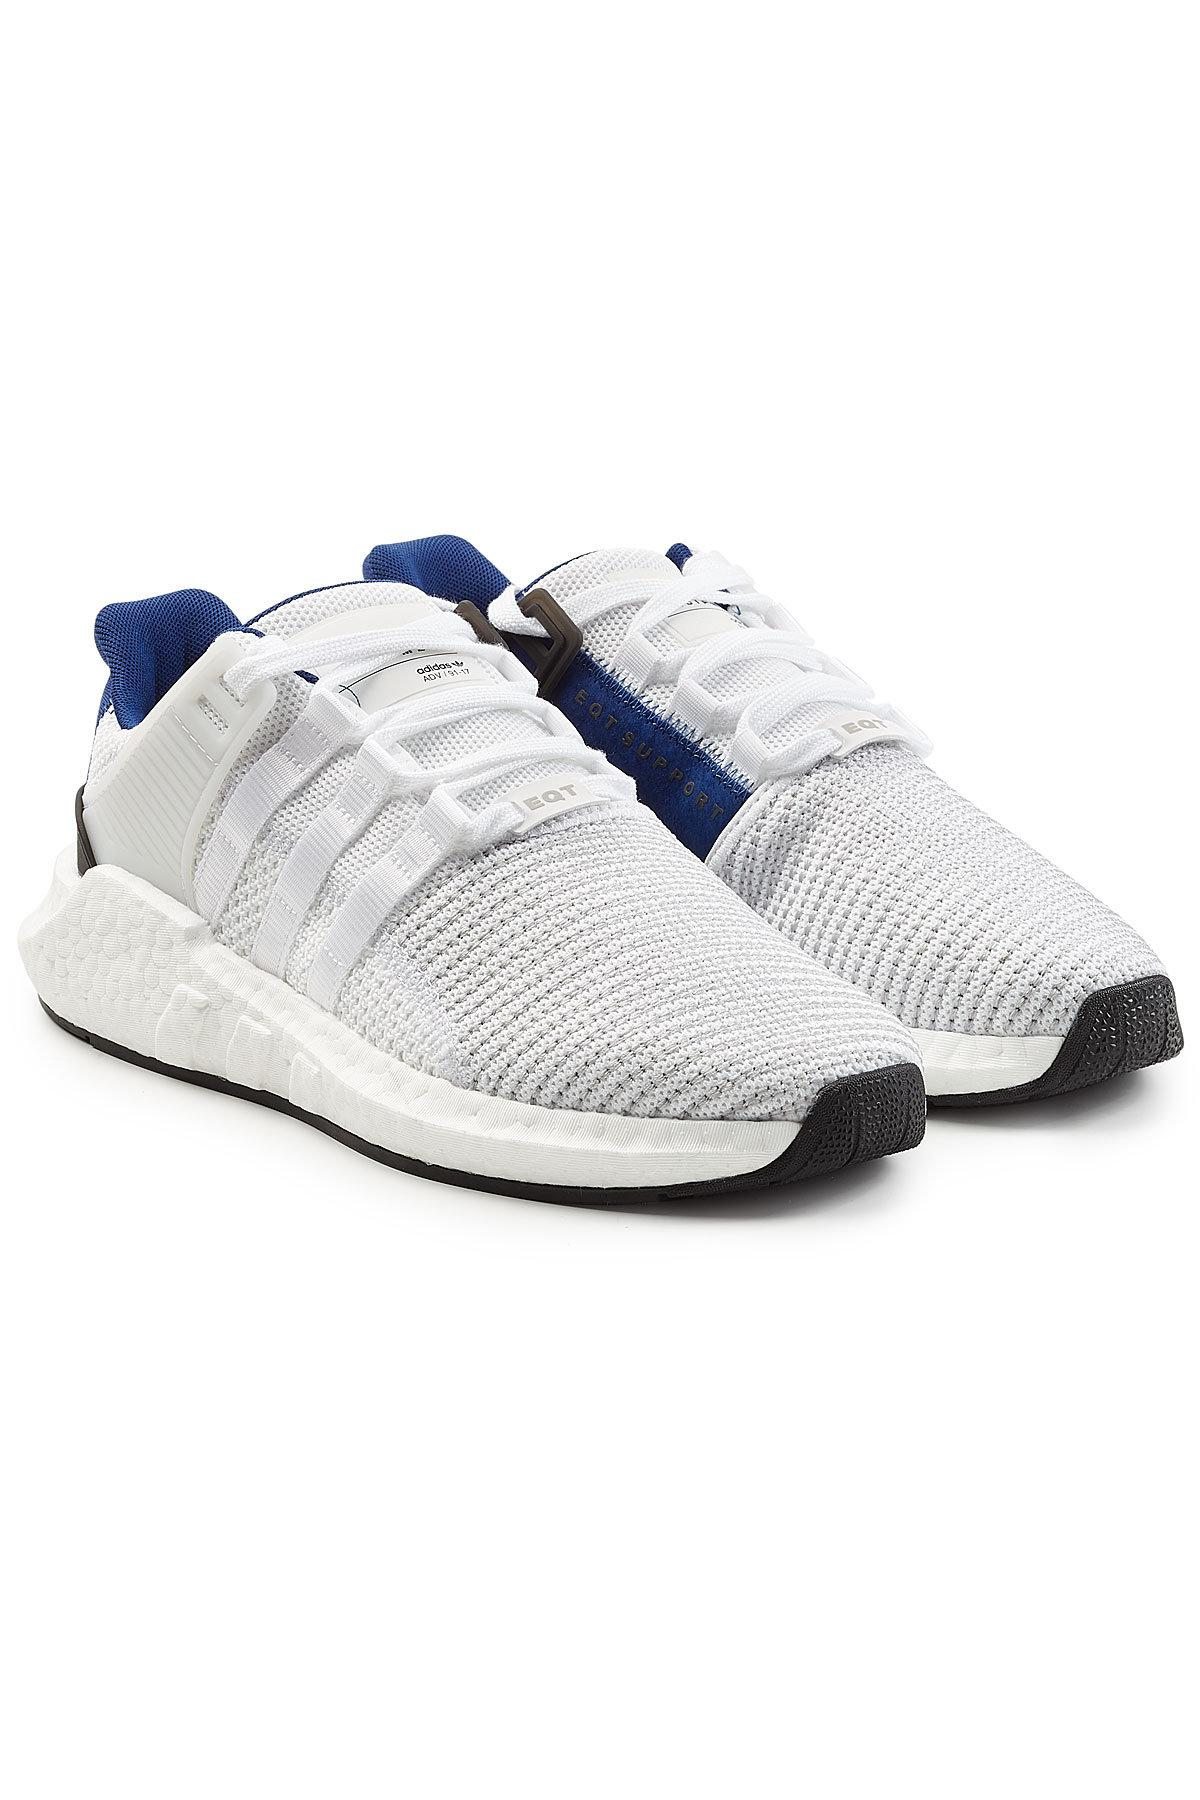 Adidas Originals Eqt Support 93/17 Sneakers With Suede In Multicolored